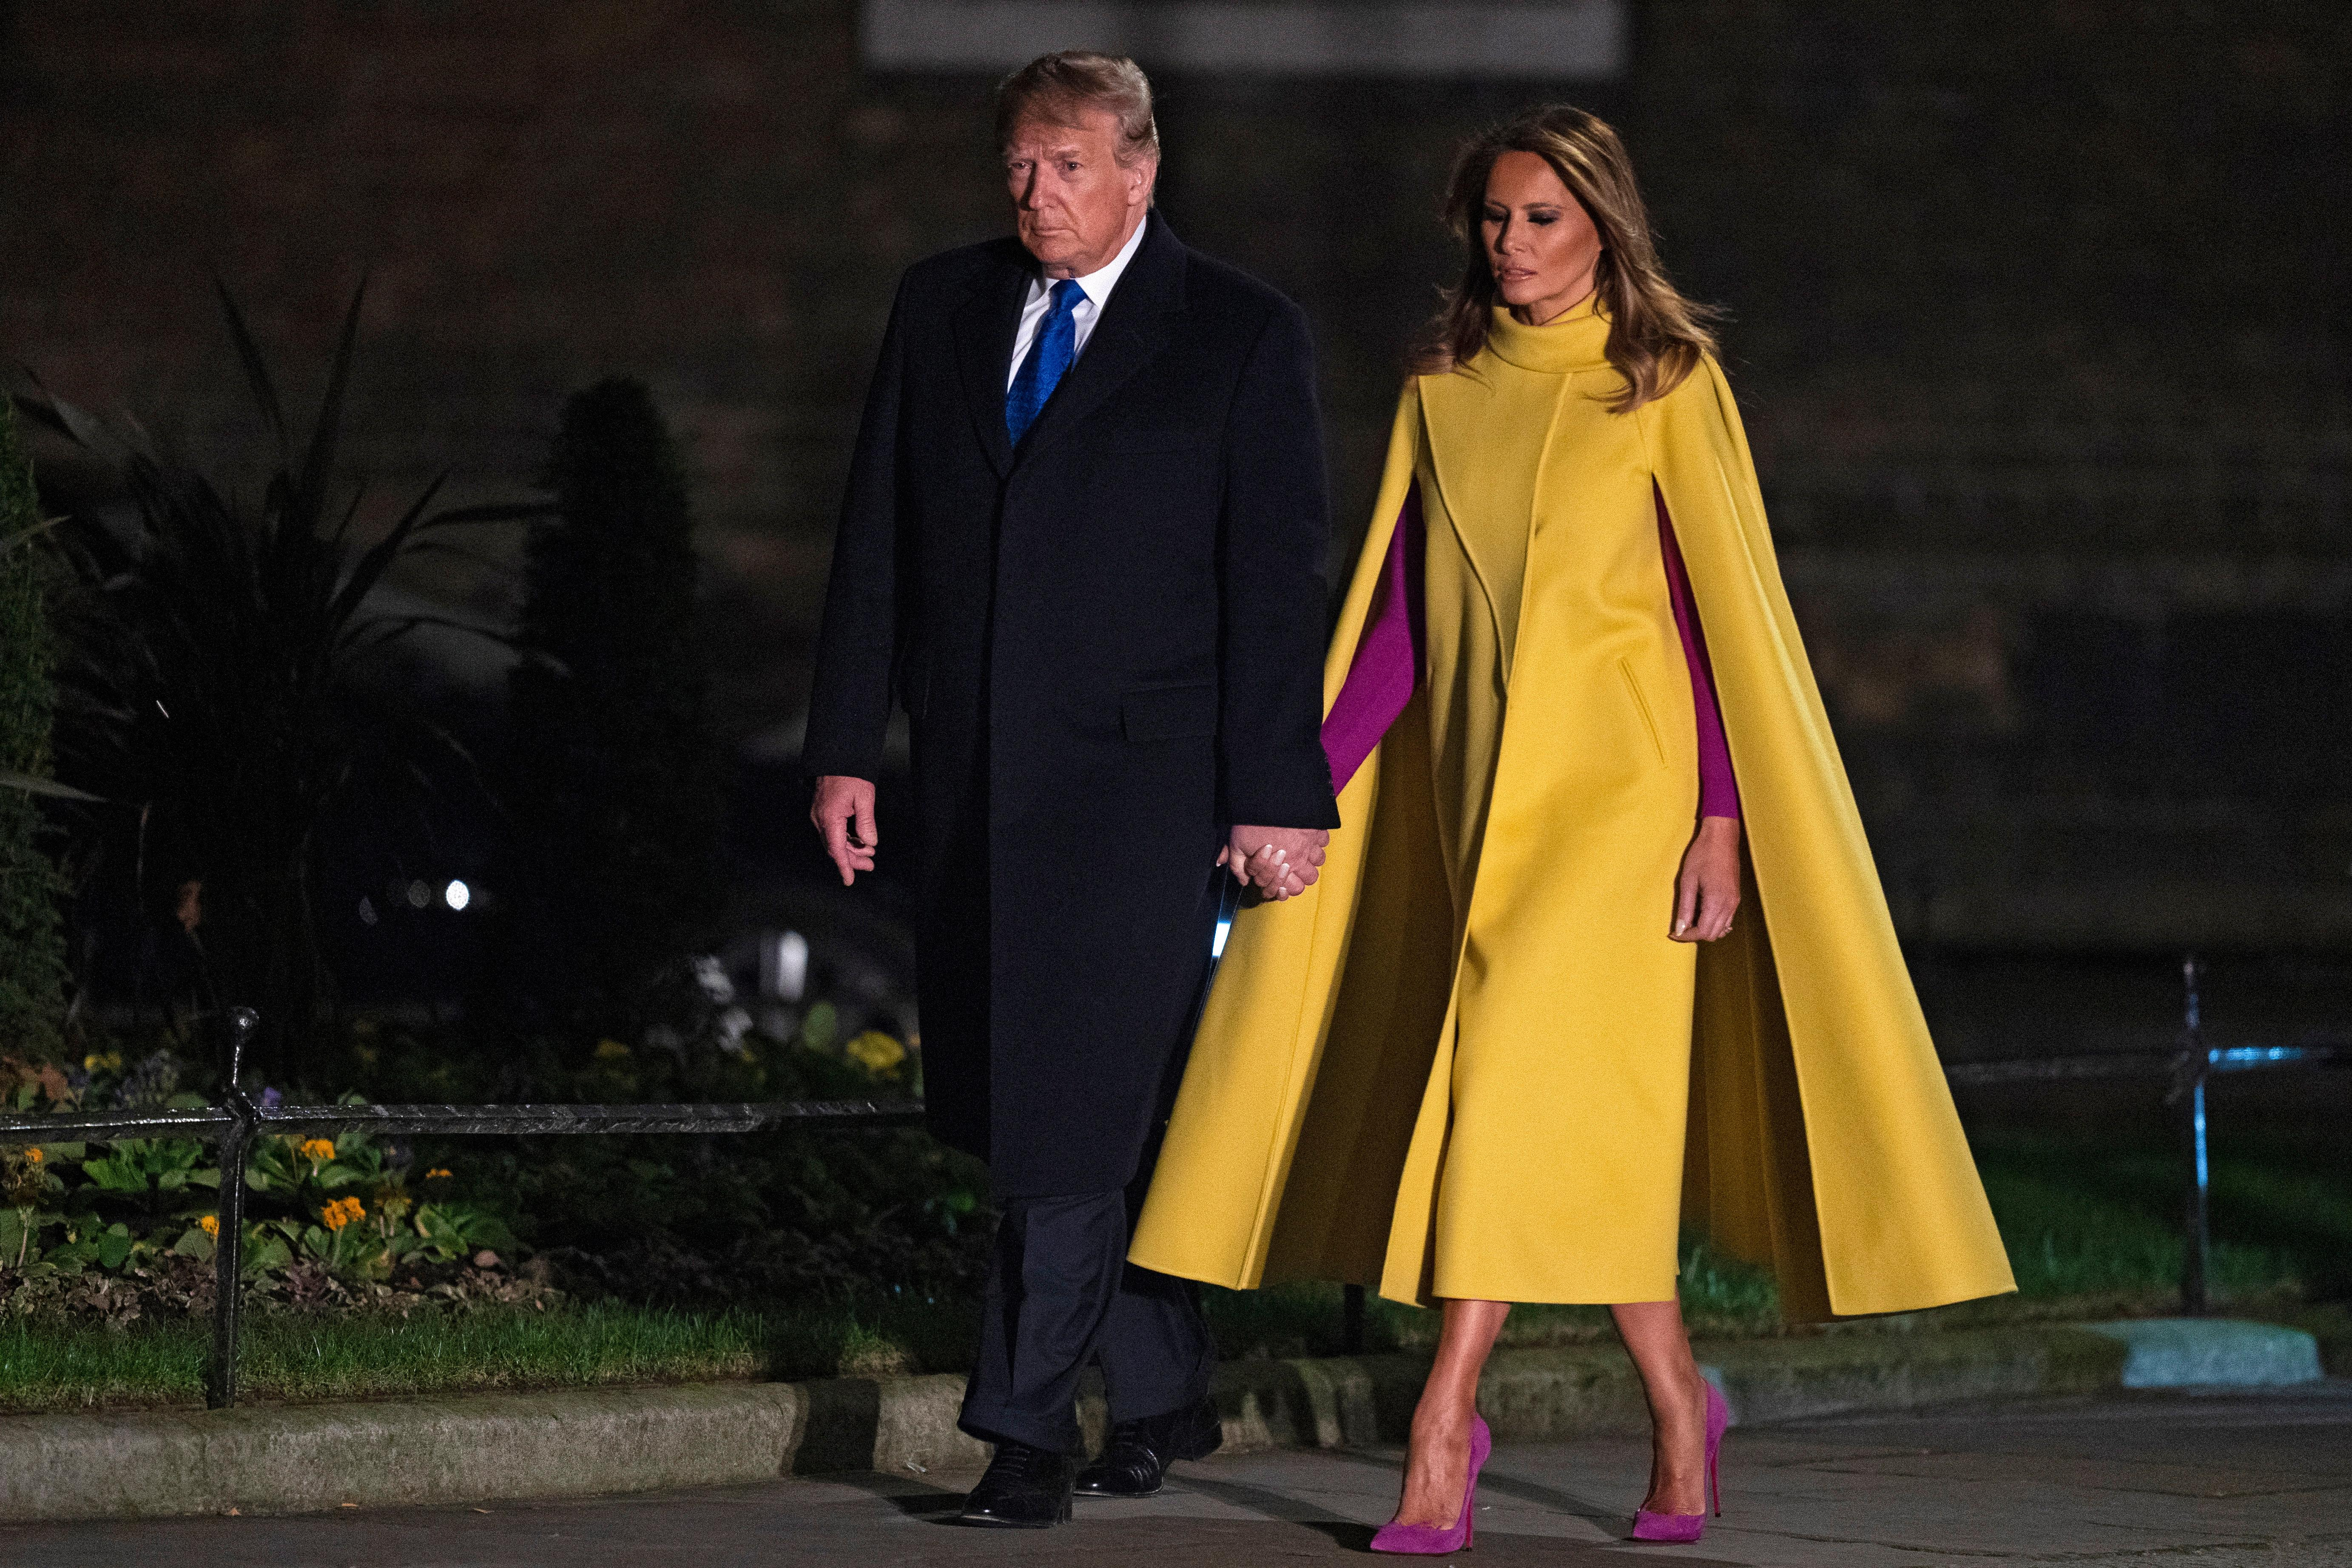 Melania Trump is no caped crusader for women's rights. She's still Donald's fig leaf